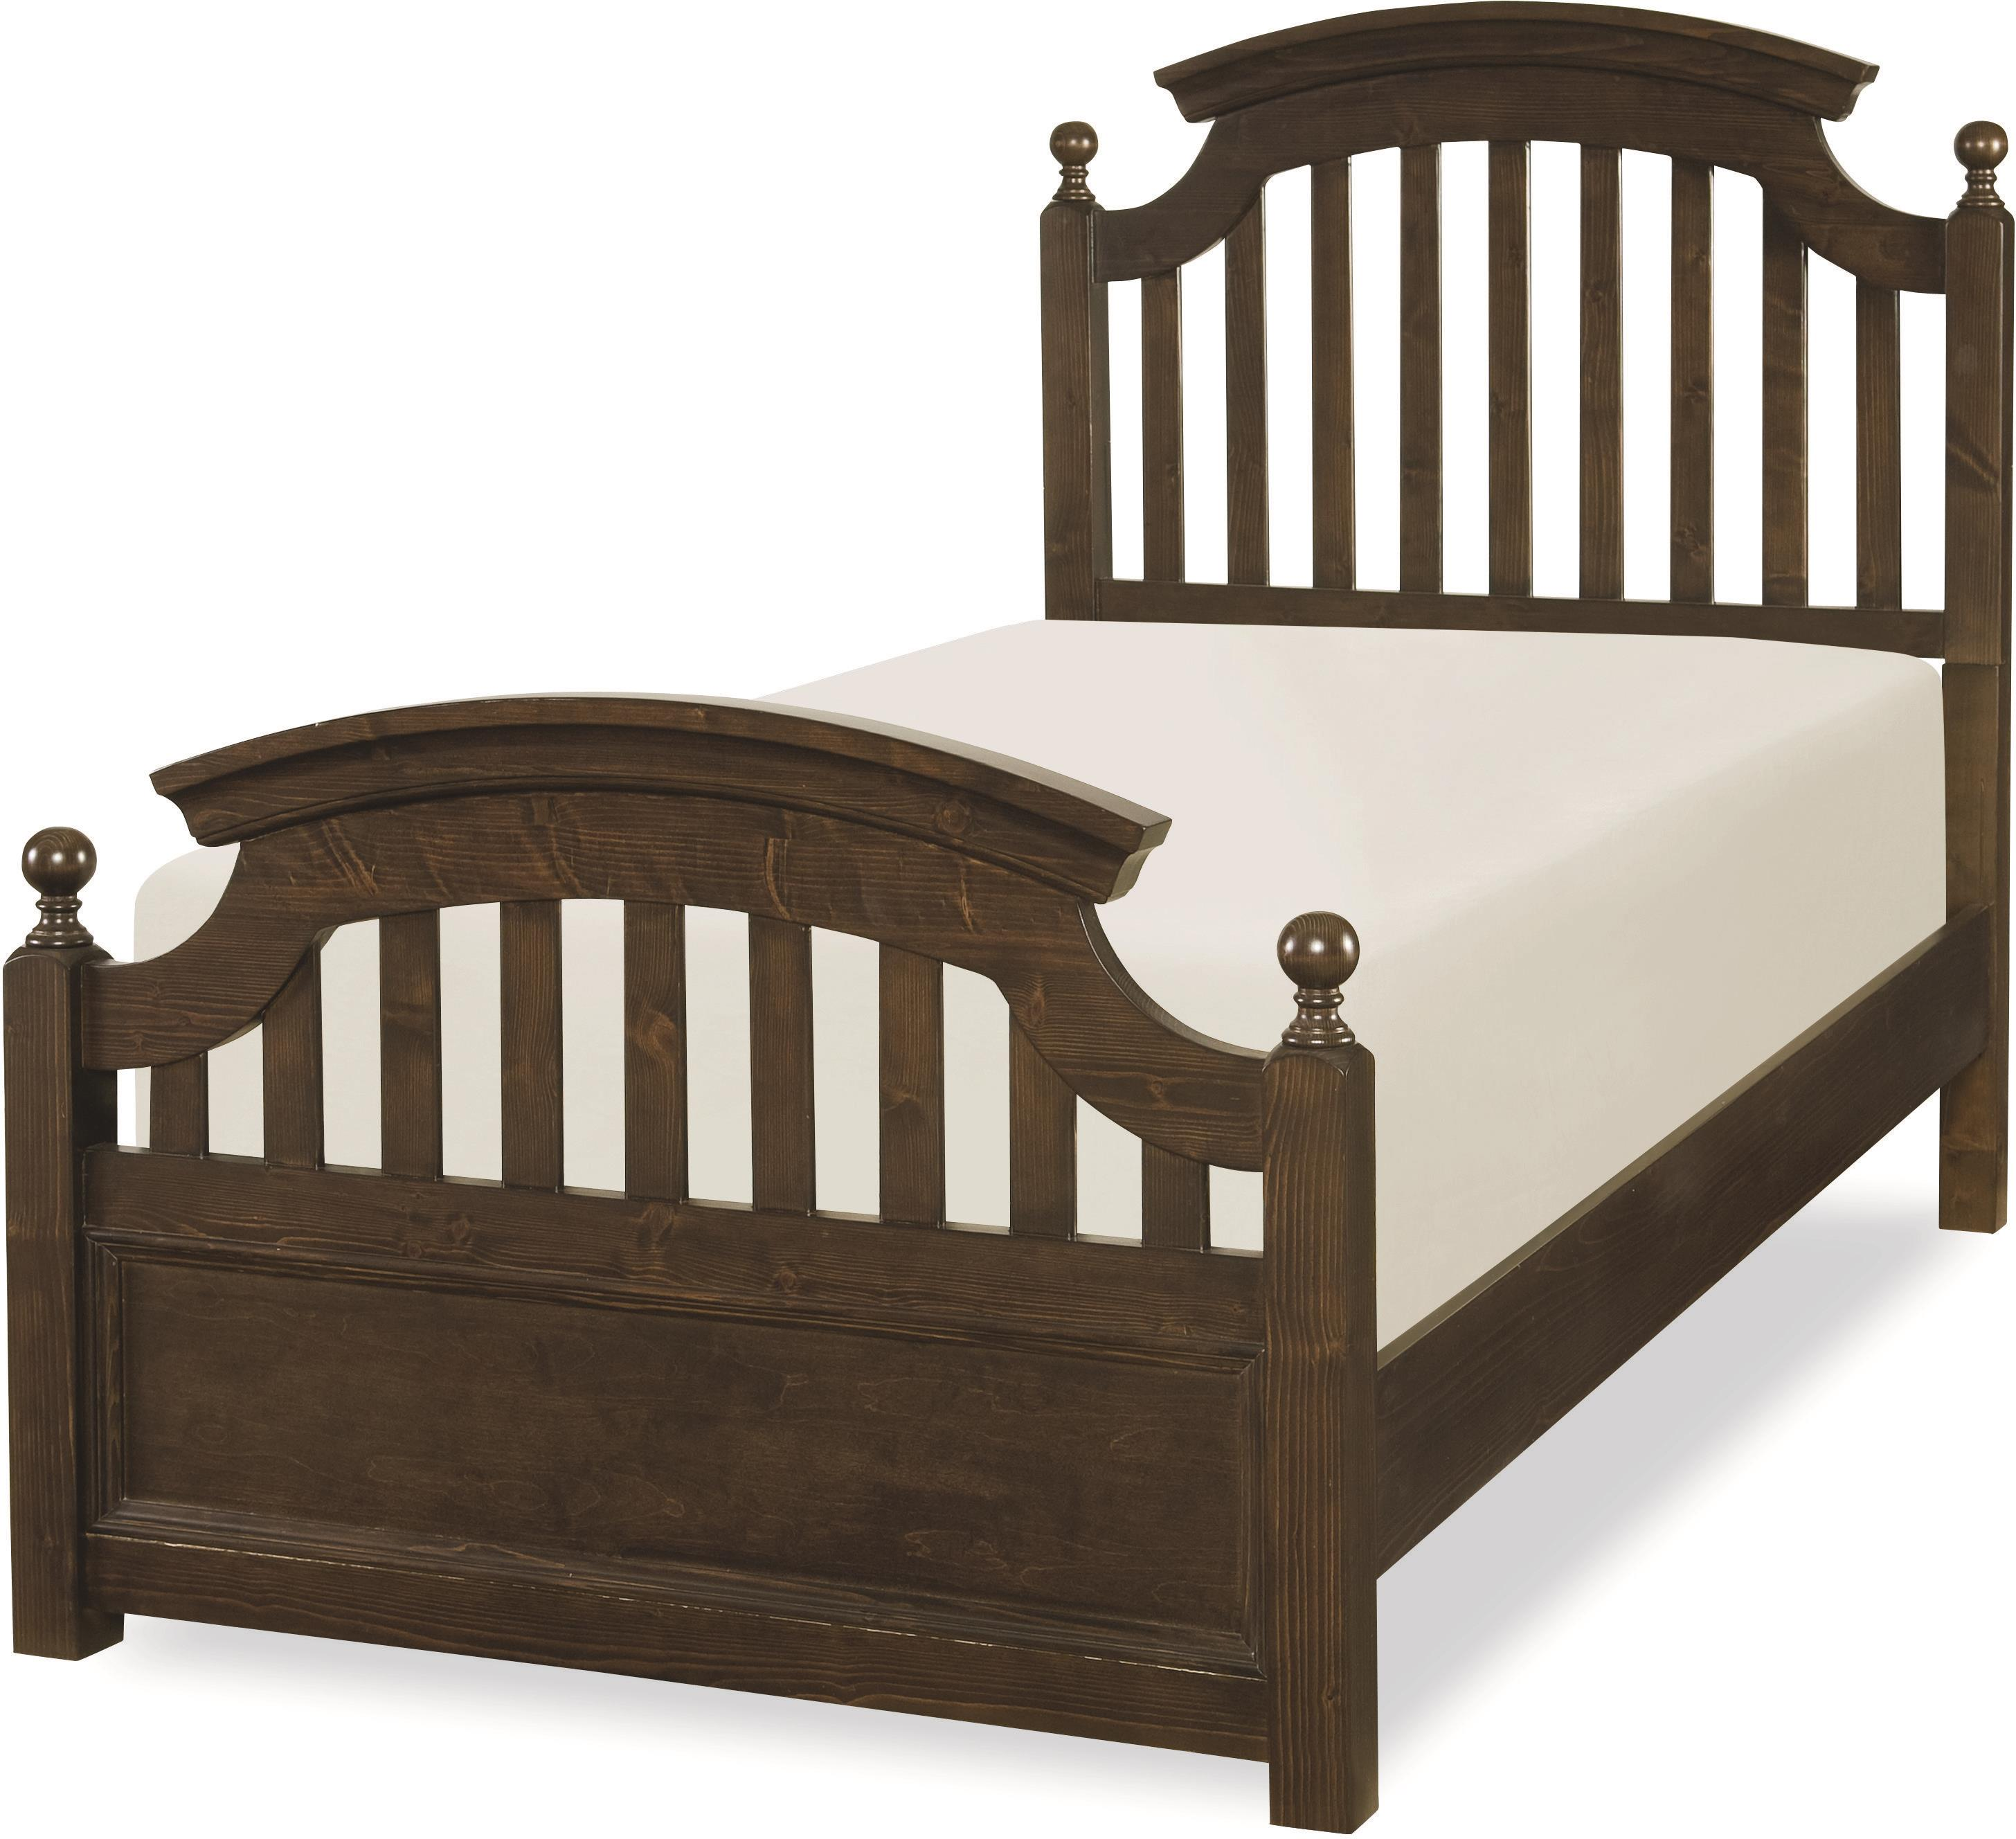 Legacy classic kids academy 5810 4104k full panel bed with for Legacy classic bed